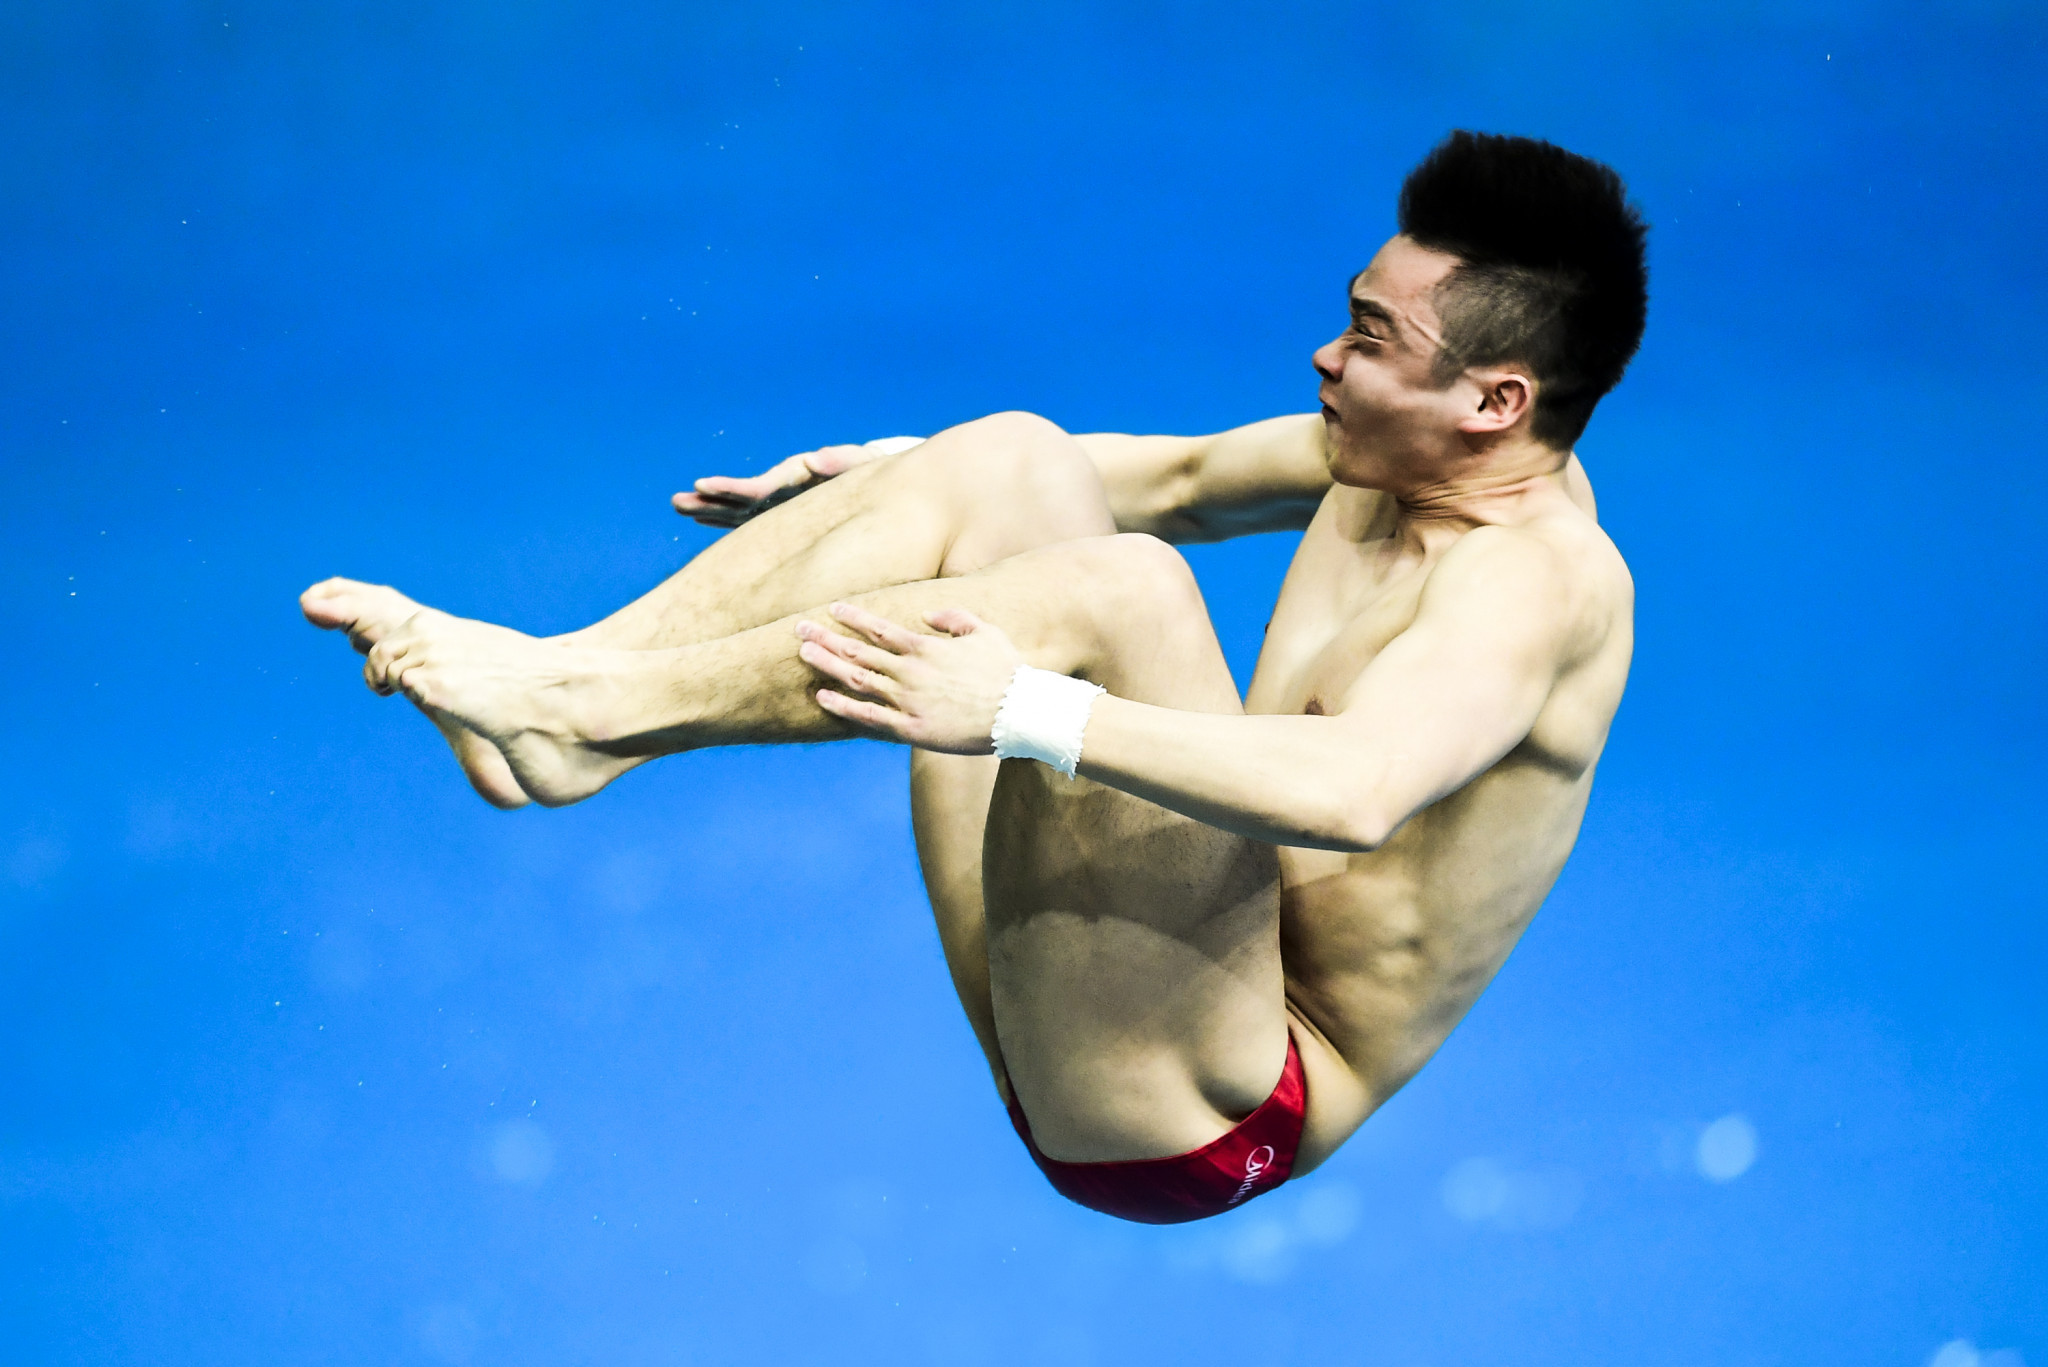 Kazan set to host latest leg of FINA Diving World Series